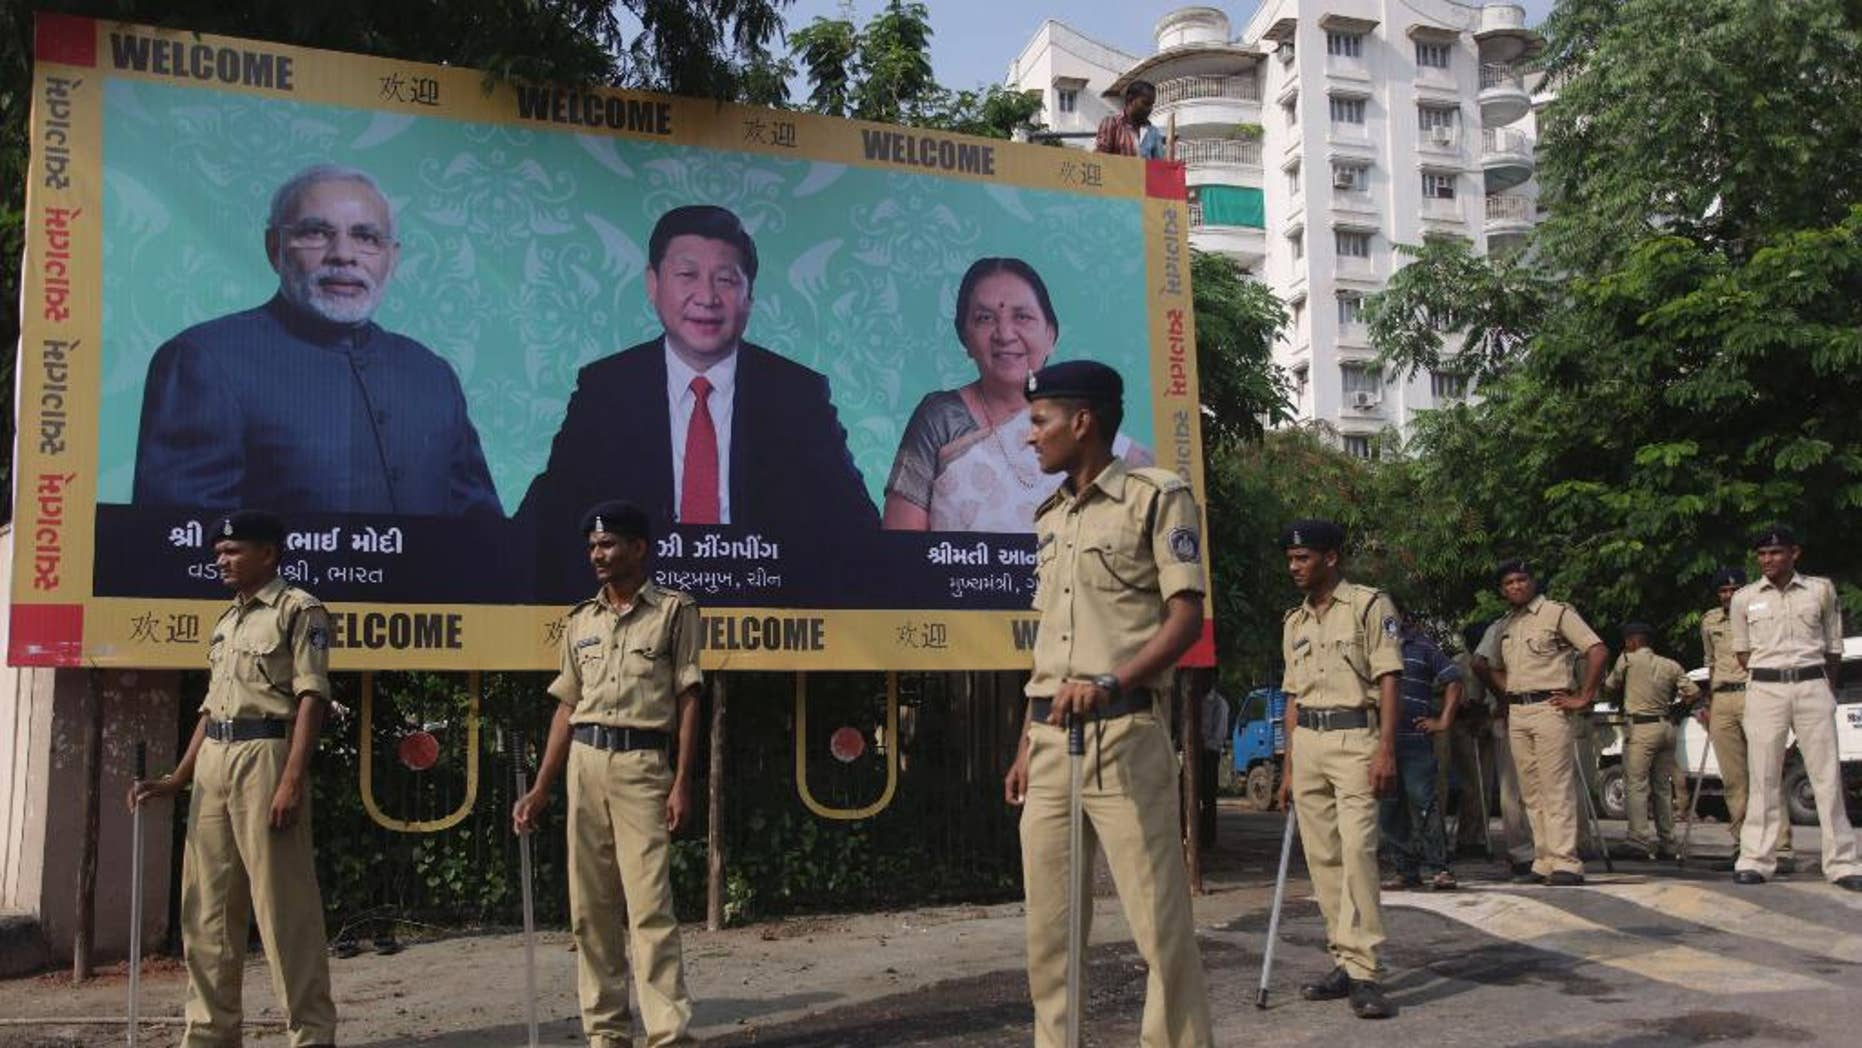 Indian policemen stand next to a welcome hoarding being erected ahead of an anticipated visit by Chinese President Xi Jinping as they review security arrangements in Ahmadabad, India, Monday, Sept. 15, 2014. Jinping is expected to arrive here Wednesday on his three-day visit to India. The hoarding also features Indian Prime Minister Narendra Modi, left and Gujarat state Chief Minister Anandiben Patel, right. (AP Photo/Ajit Solanki)